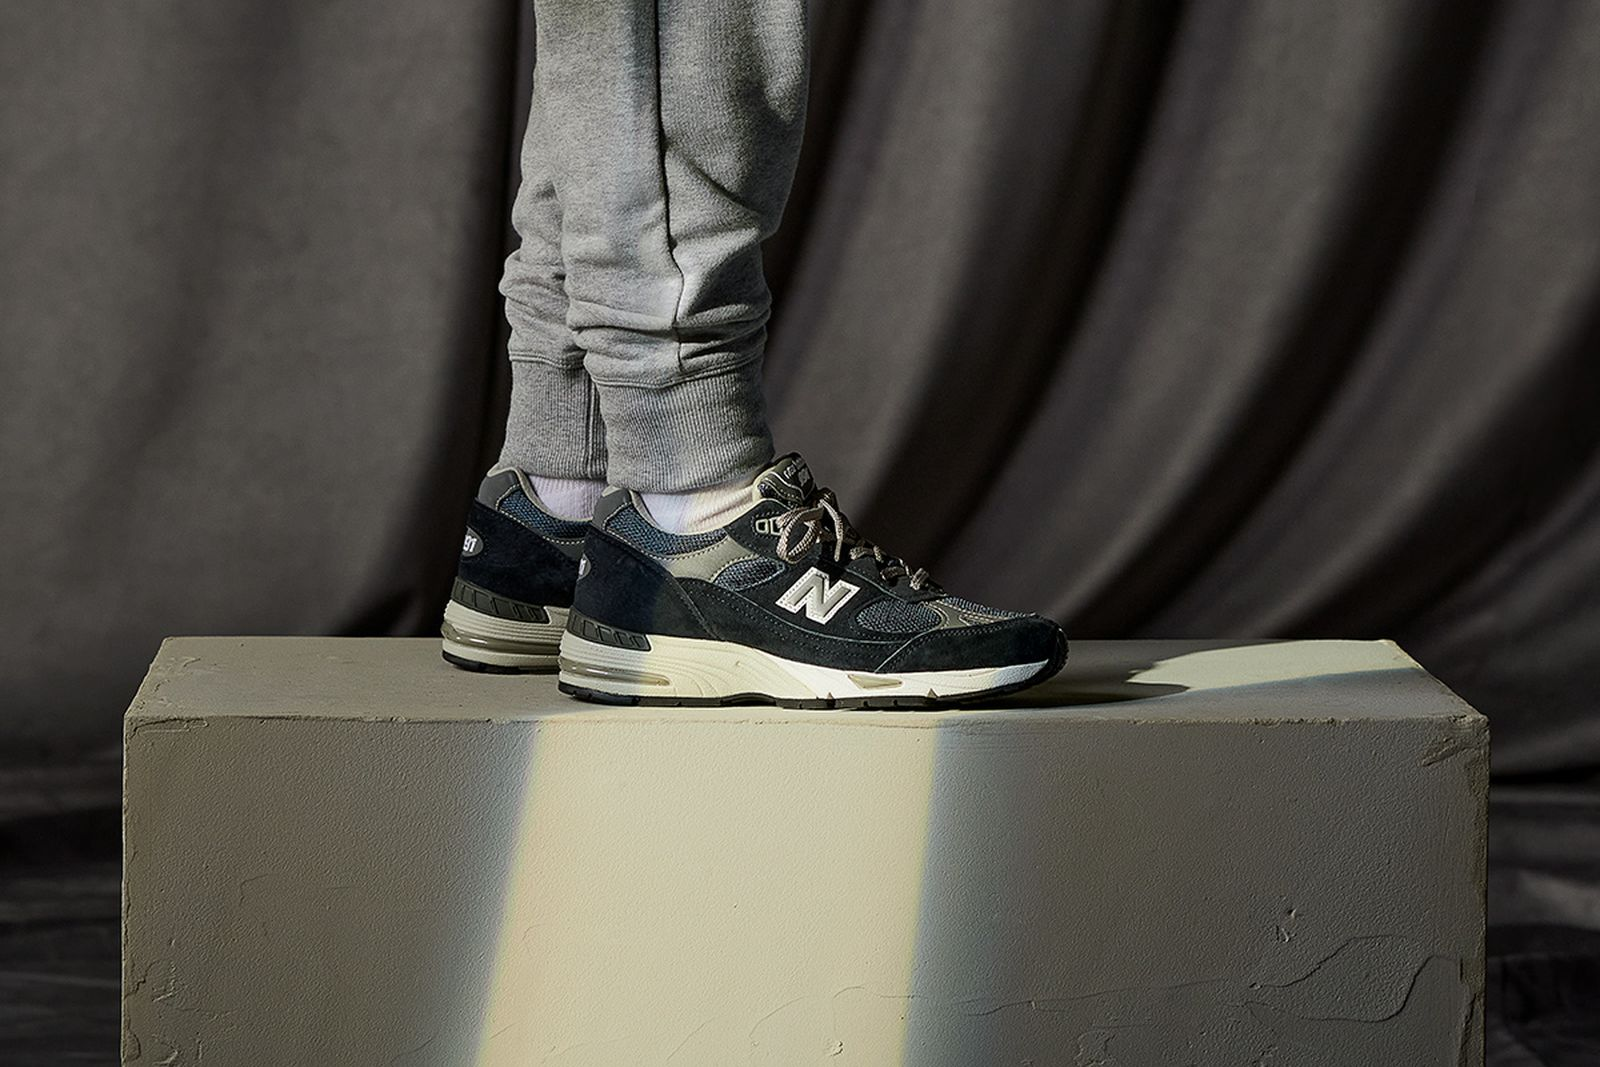 new-balance-991-anniversary-pack-release-date-price-14